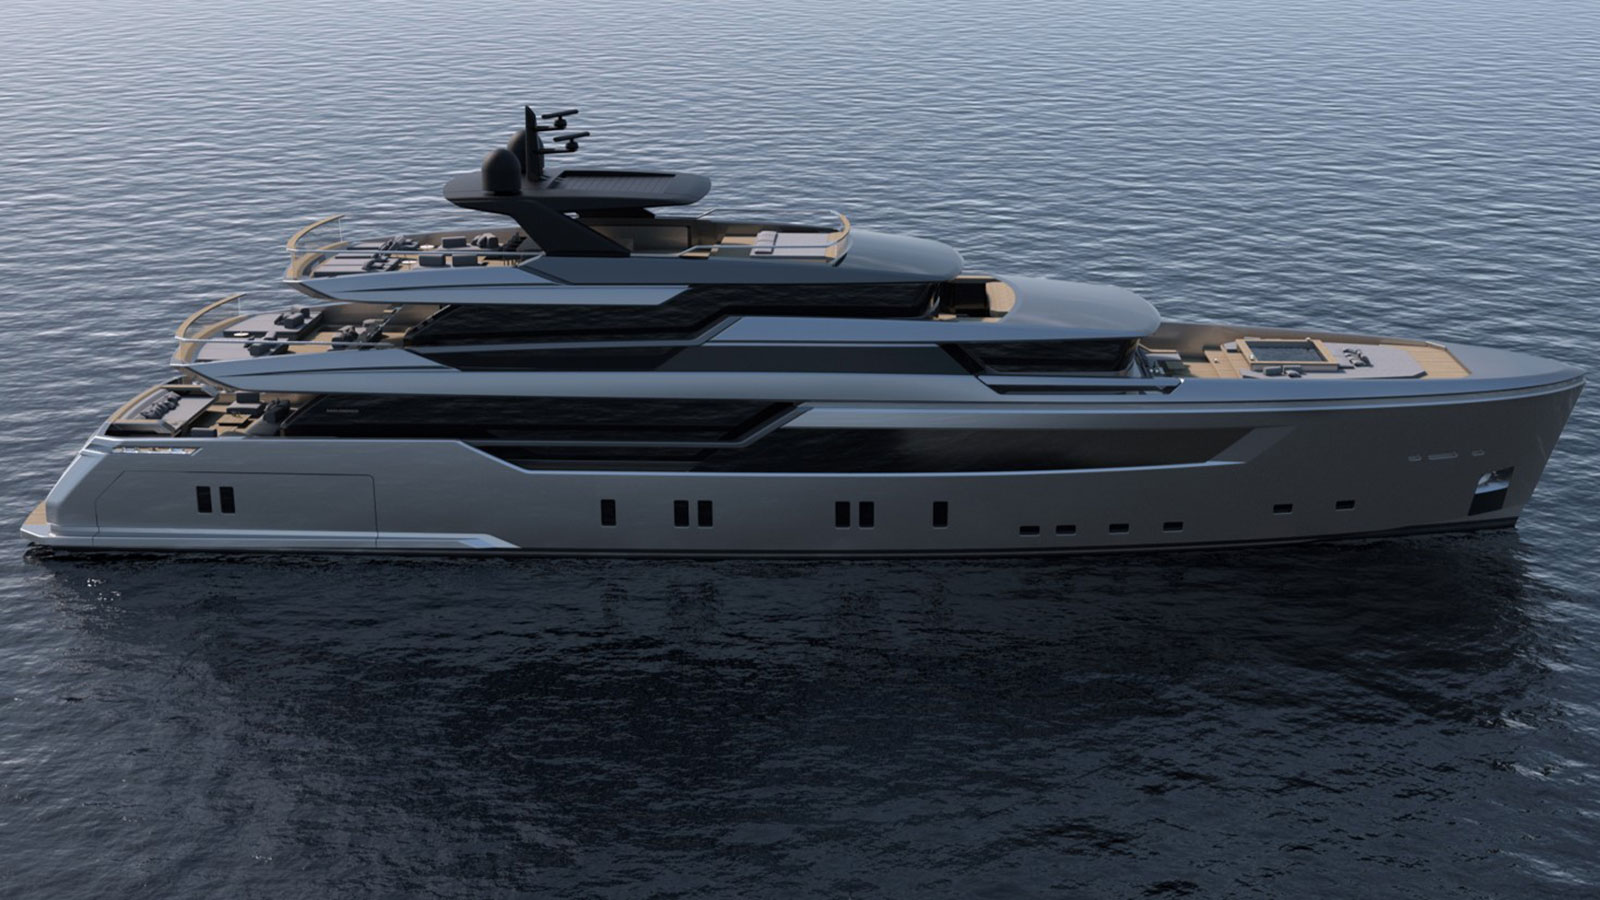 the-sanlorenzo-44-alloy-yacht-will-be-offered-in-an-e-motion-hybrid-version